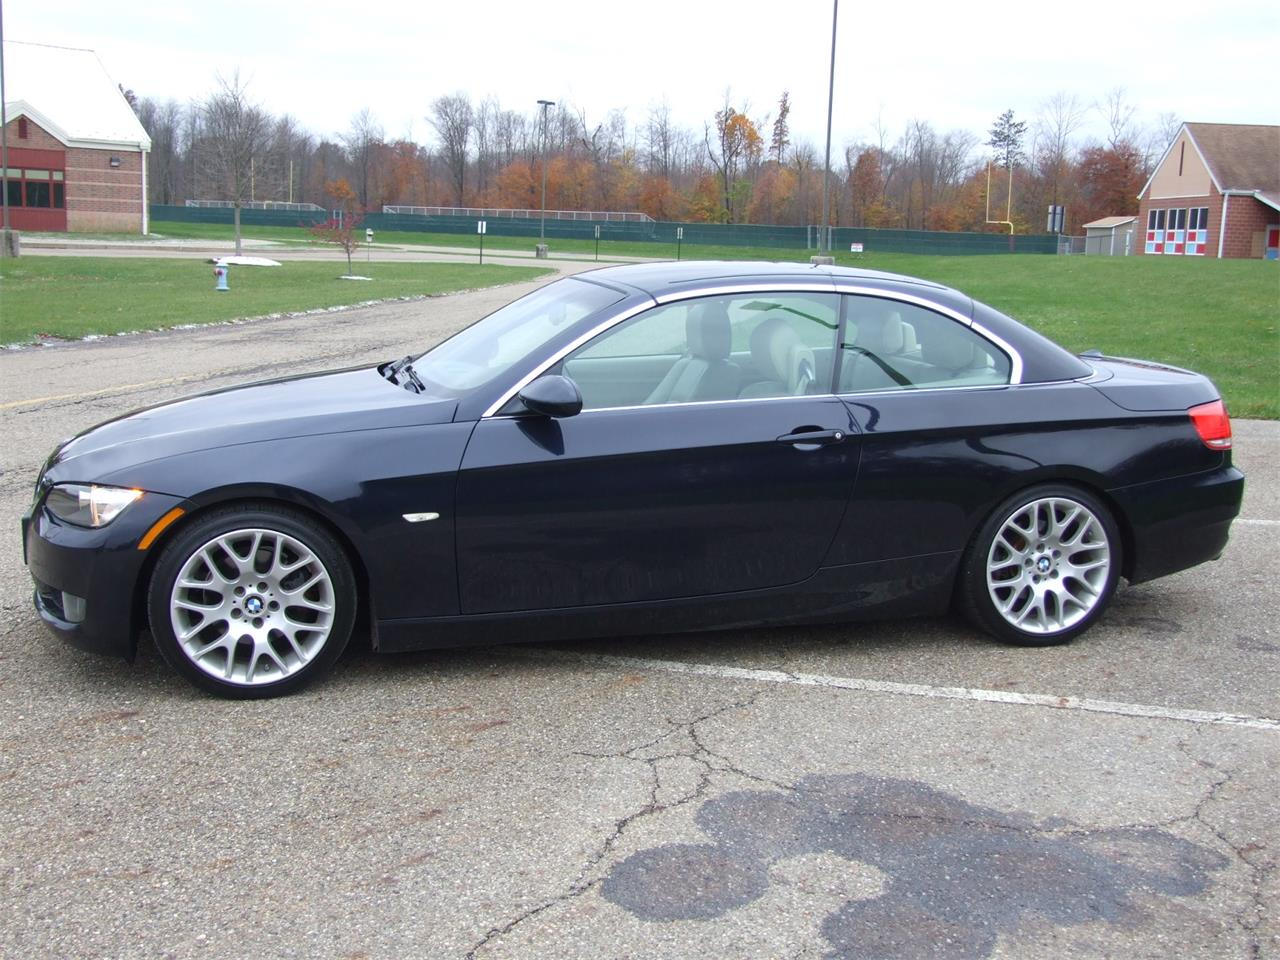 Large Picture of '08 BMW 328i located in Ohio Offered by Auto Connection, Inc. - P1OU